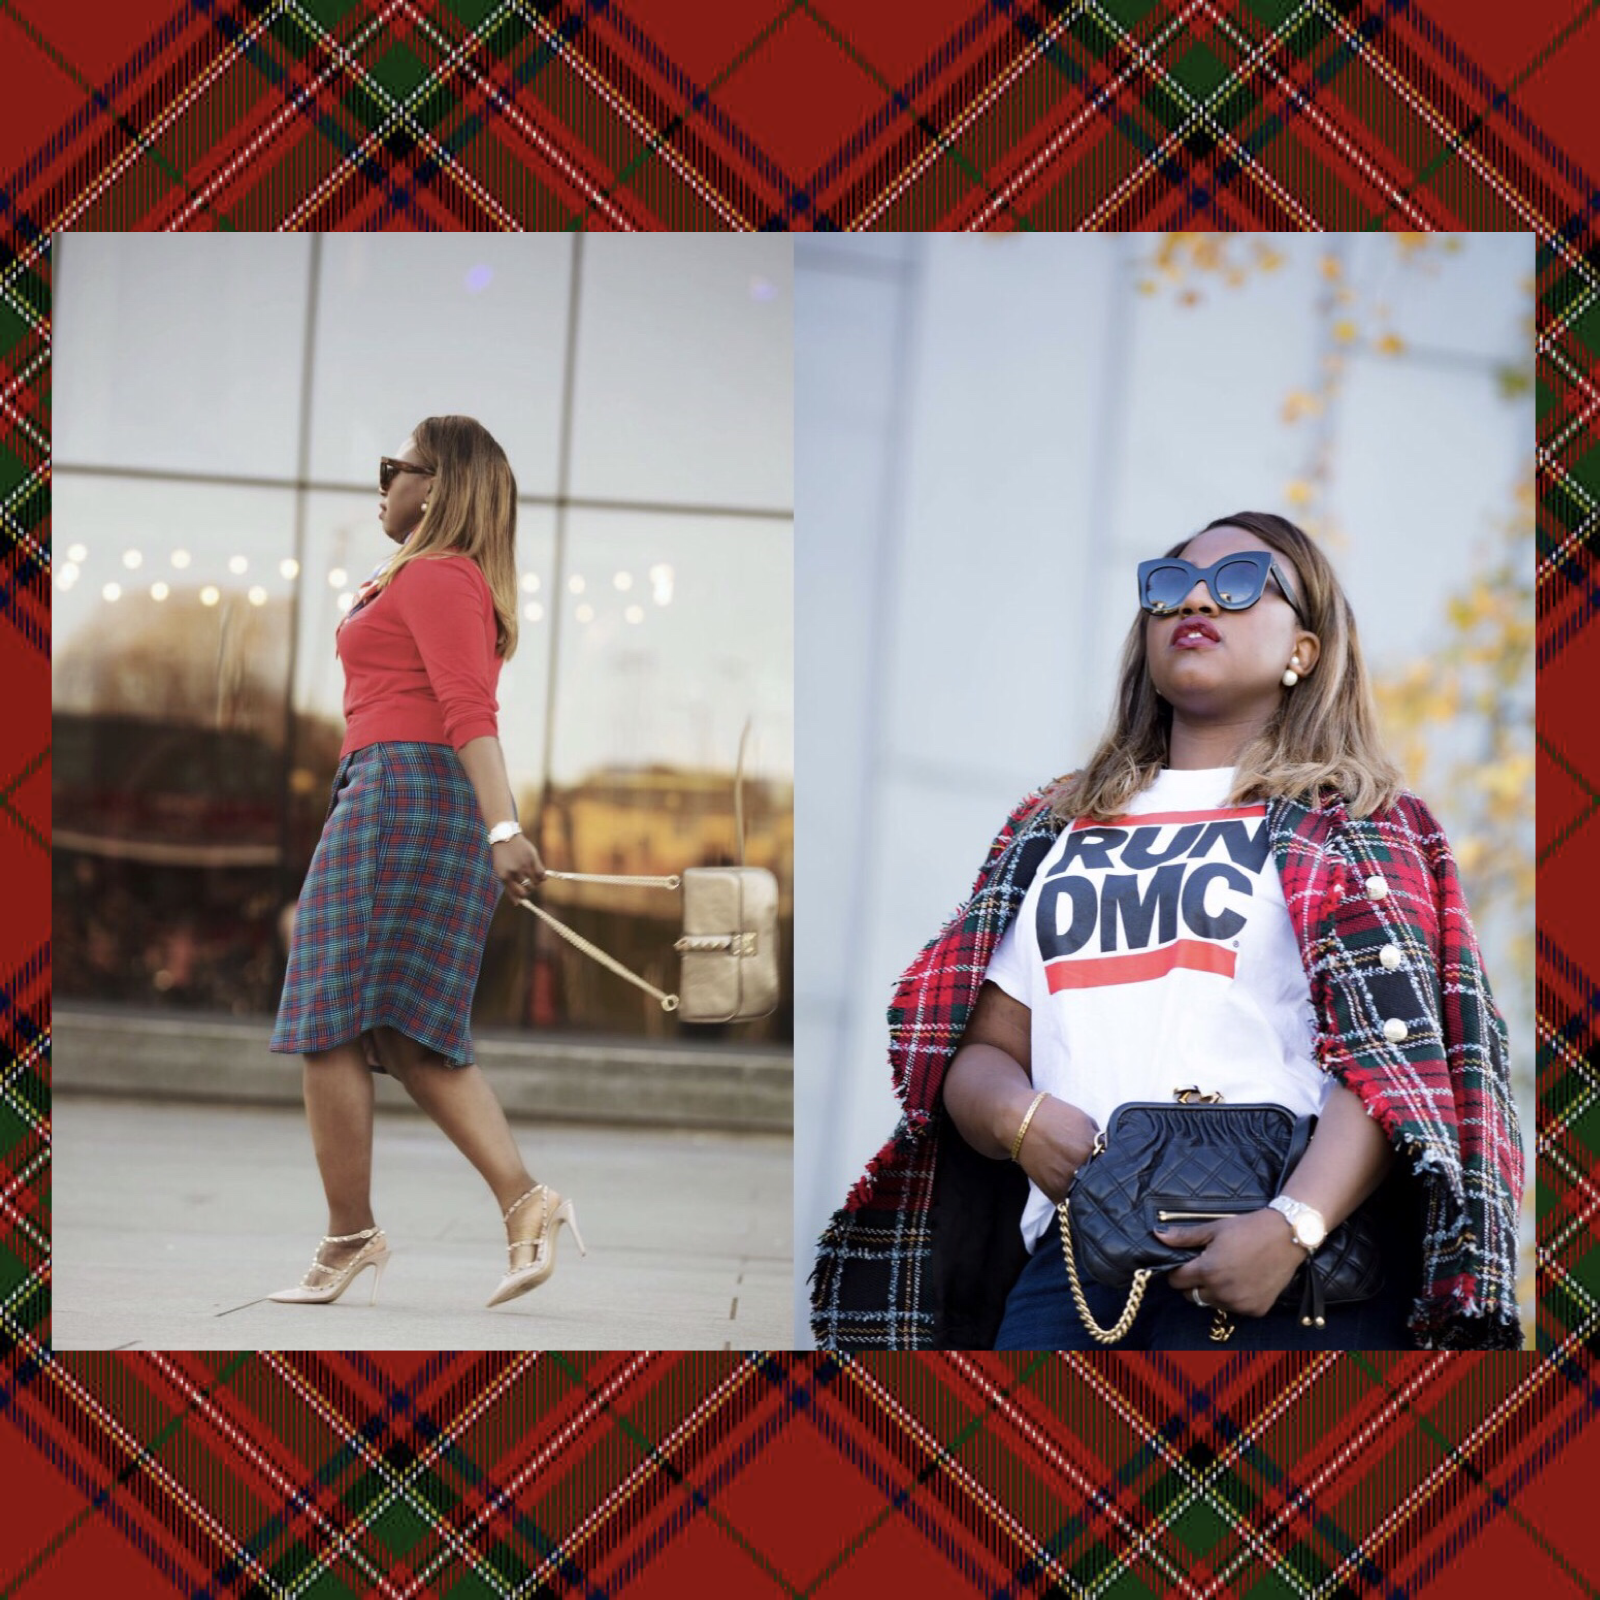 TWO WAYS TO WEAR TARTAN!